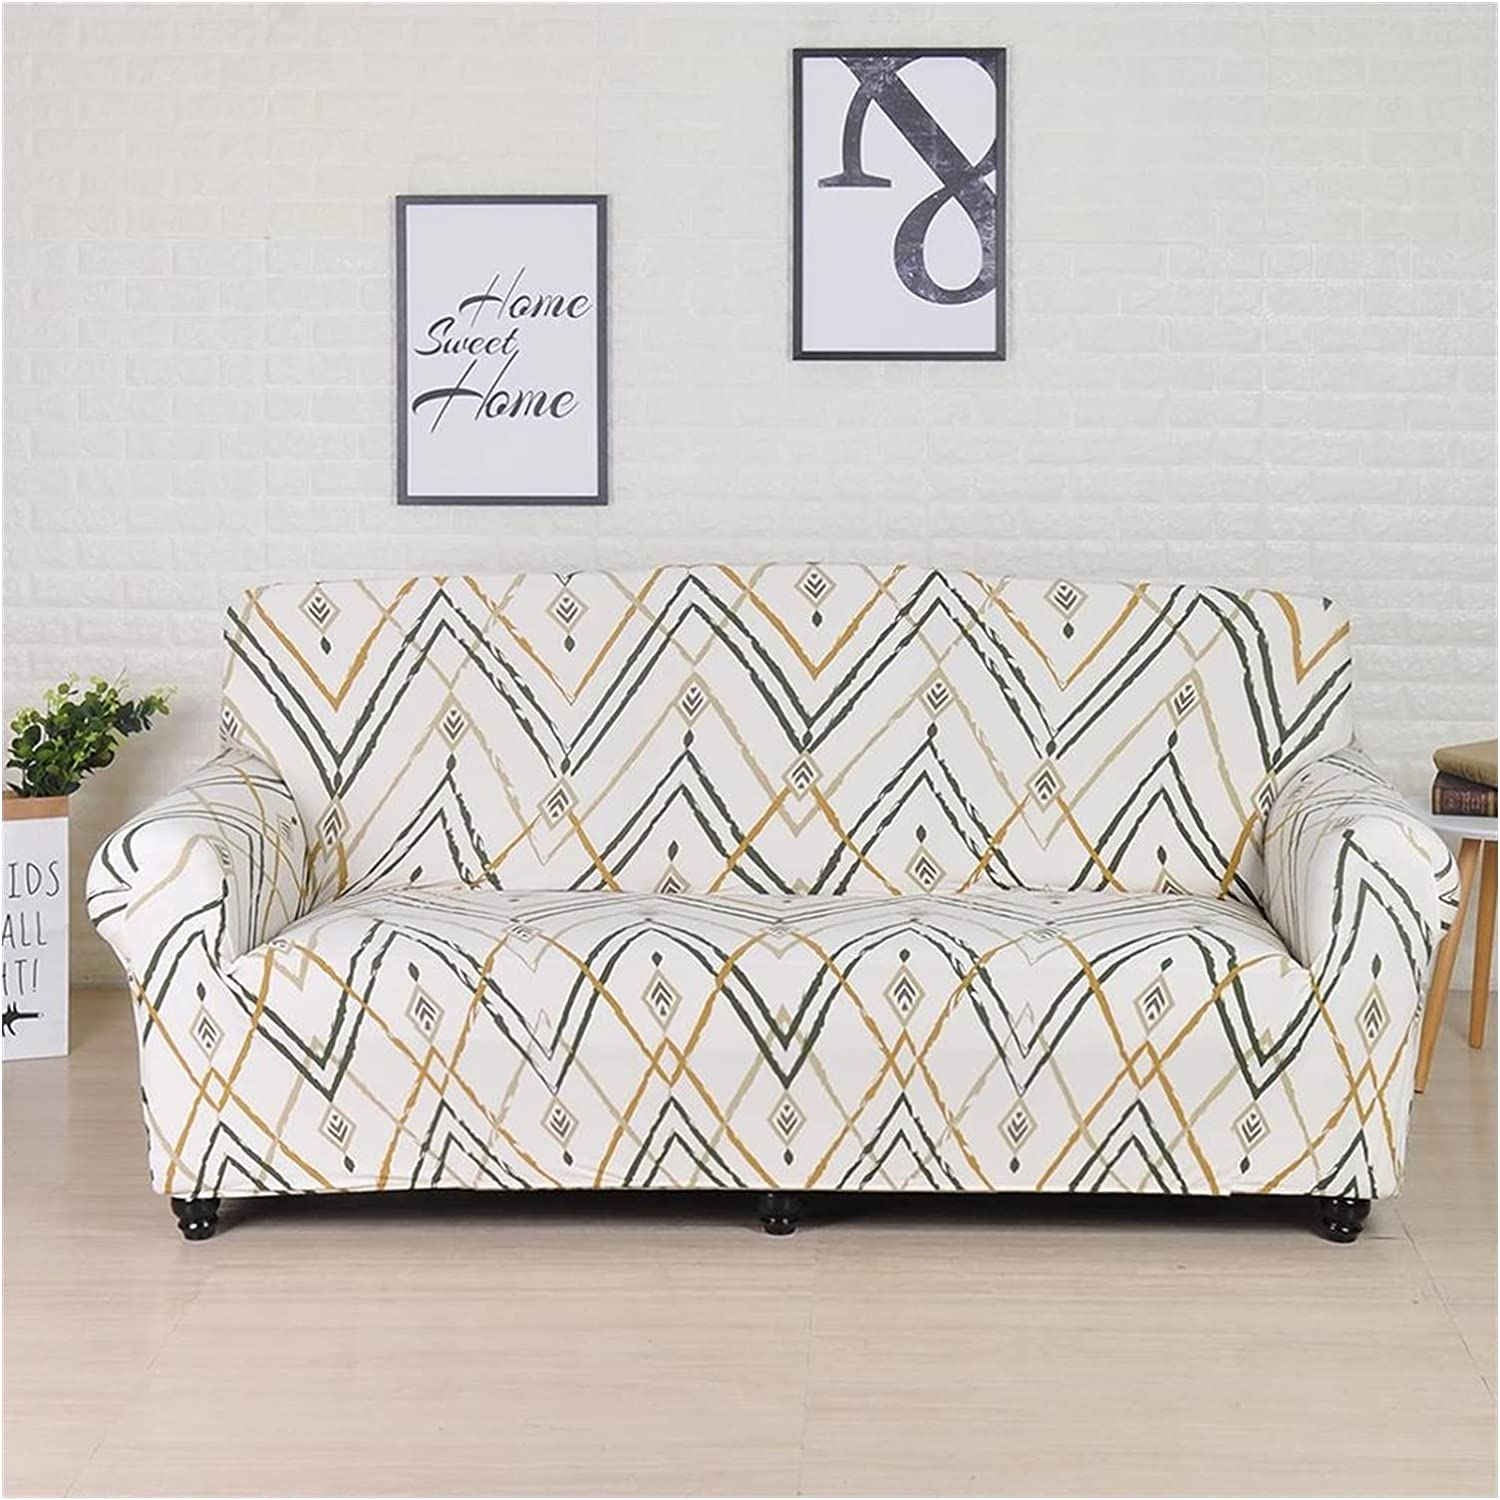 Stretch Houston Mall Sofa Slipcover Washable 4 years warranty Fit Spandex Sectional Cover